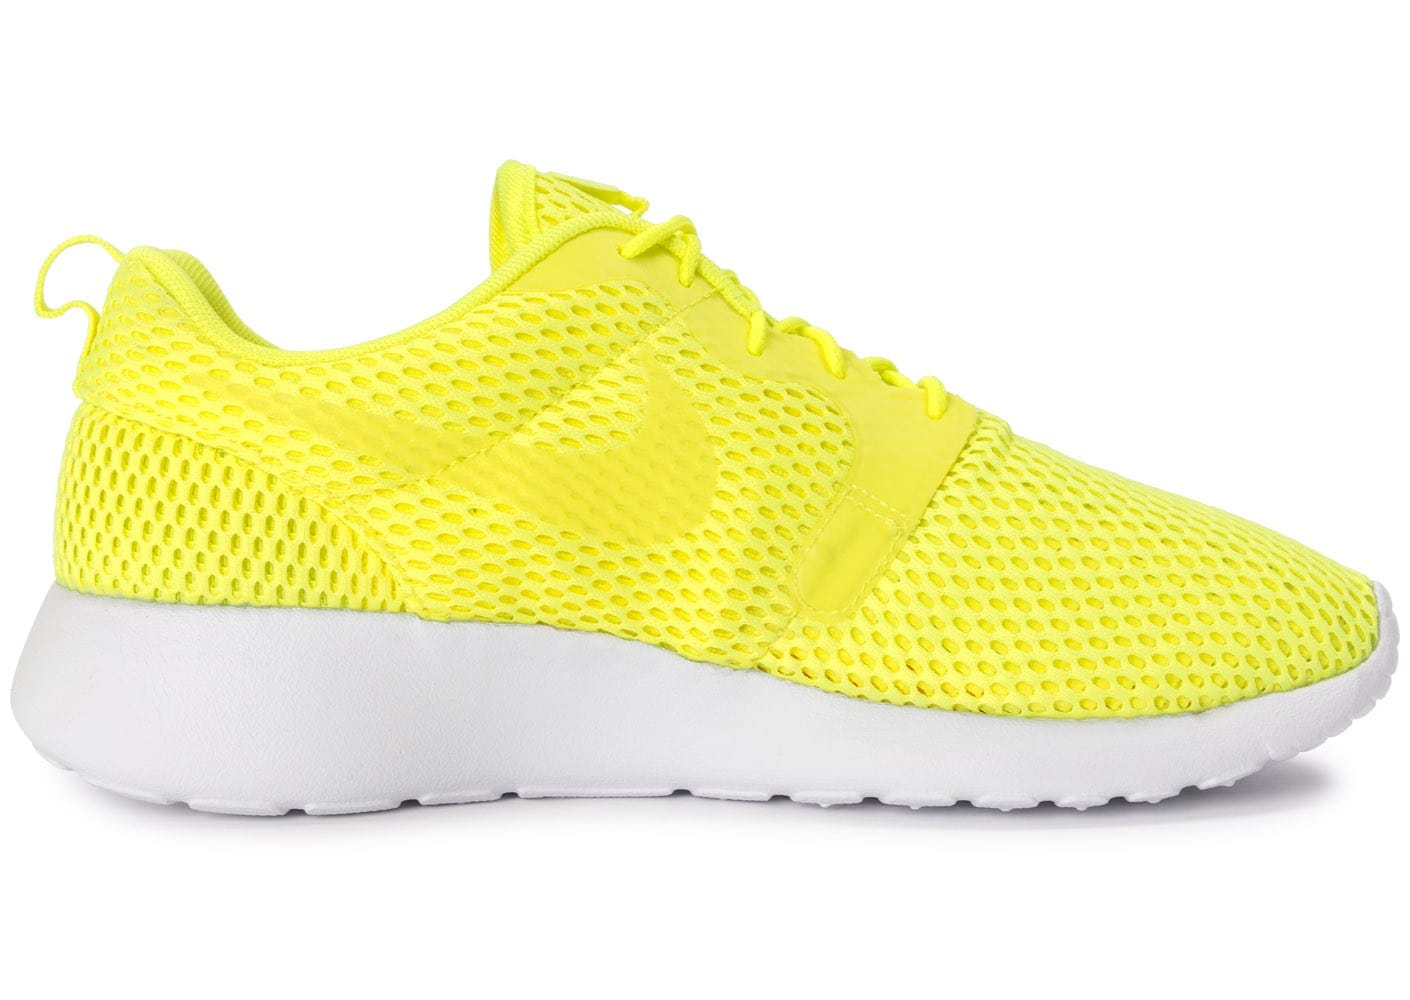 images détaillées 54a89 14231 Nike Roshe One Hyperfuse BR Jaune - Chaussures Baskets homme ...